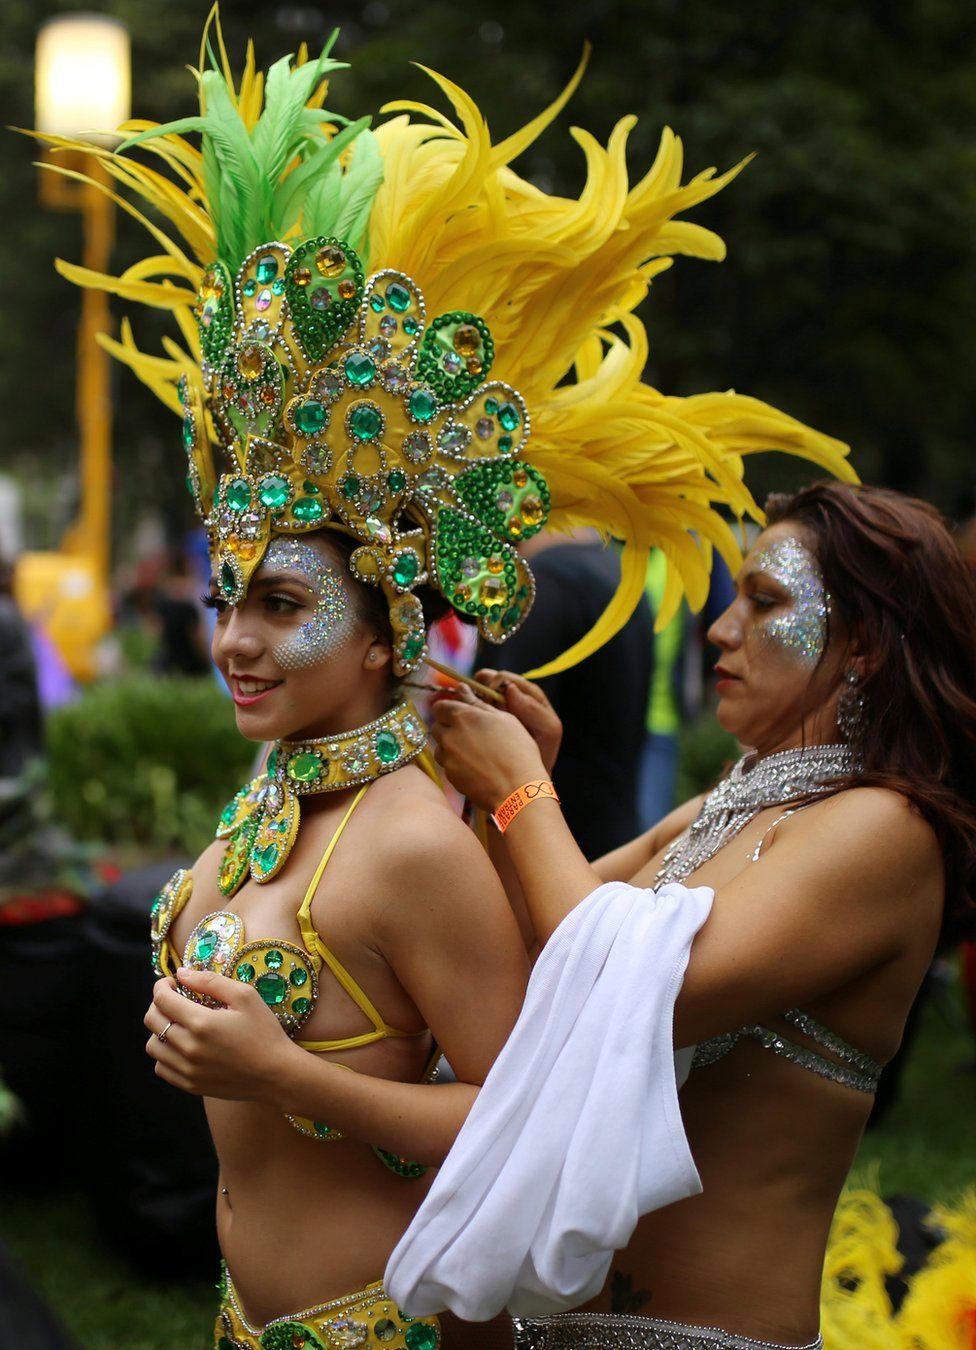 A woman in a bikini and elaborate yellow and green feathered headress and collar, in the annual Sydney Gay and Lesbian Mardi Gras festival prepares her costume in Sydney, Australia March 4, 2017